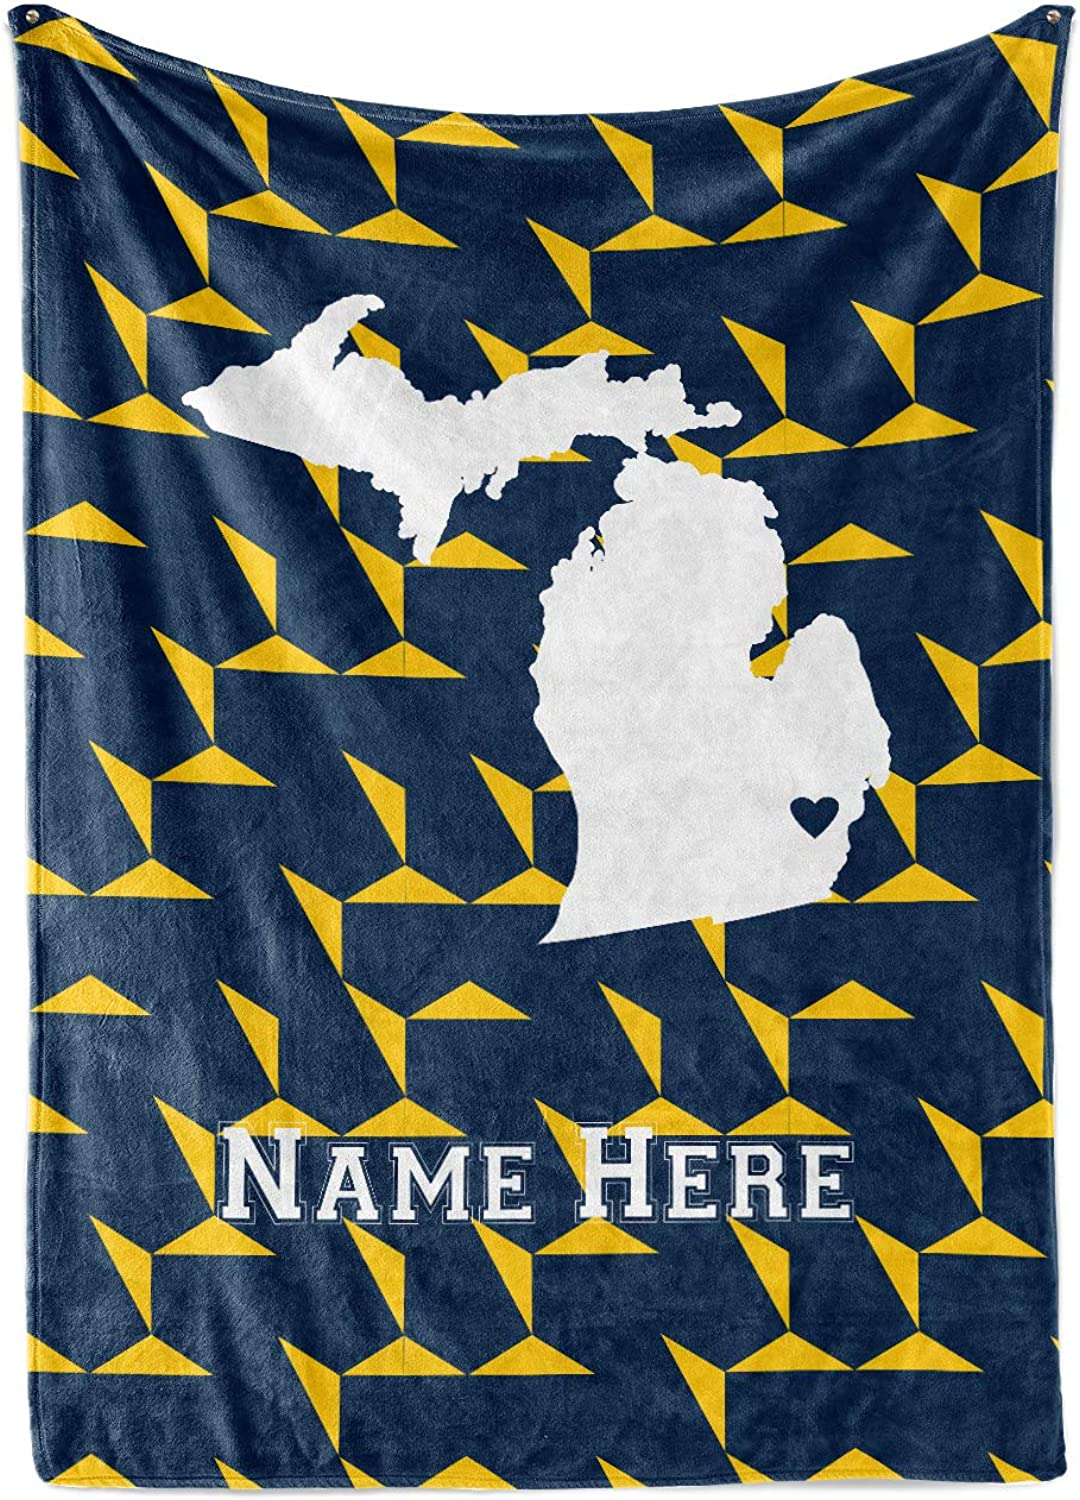 State Pride Series Michigan - Personalized Custom Fleece Throw Blankets with Your Family Name - Ann Arbor Edition